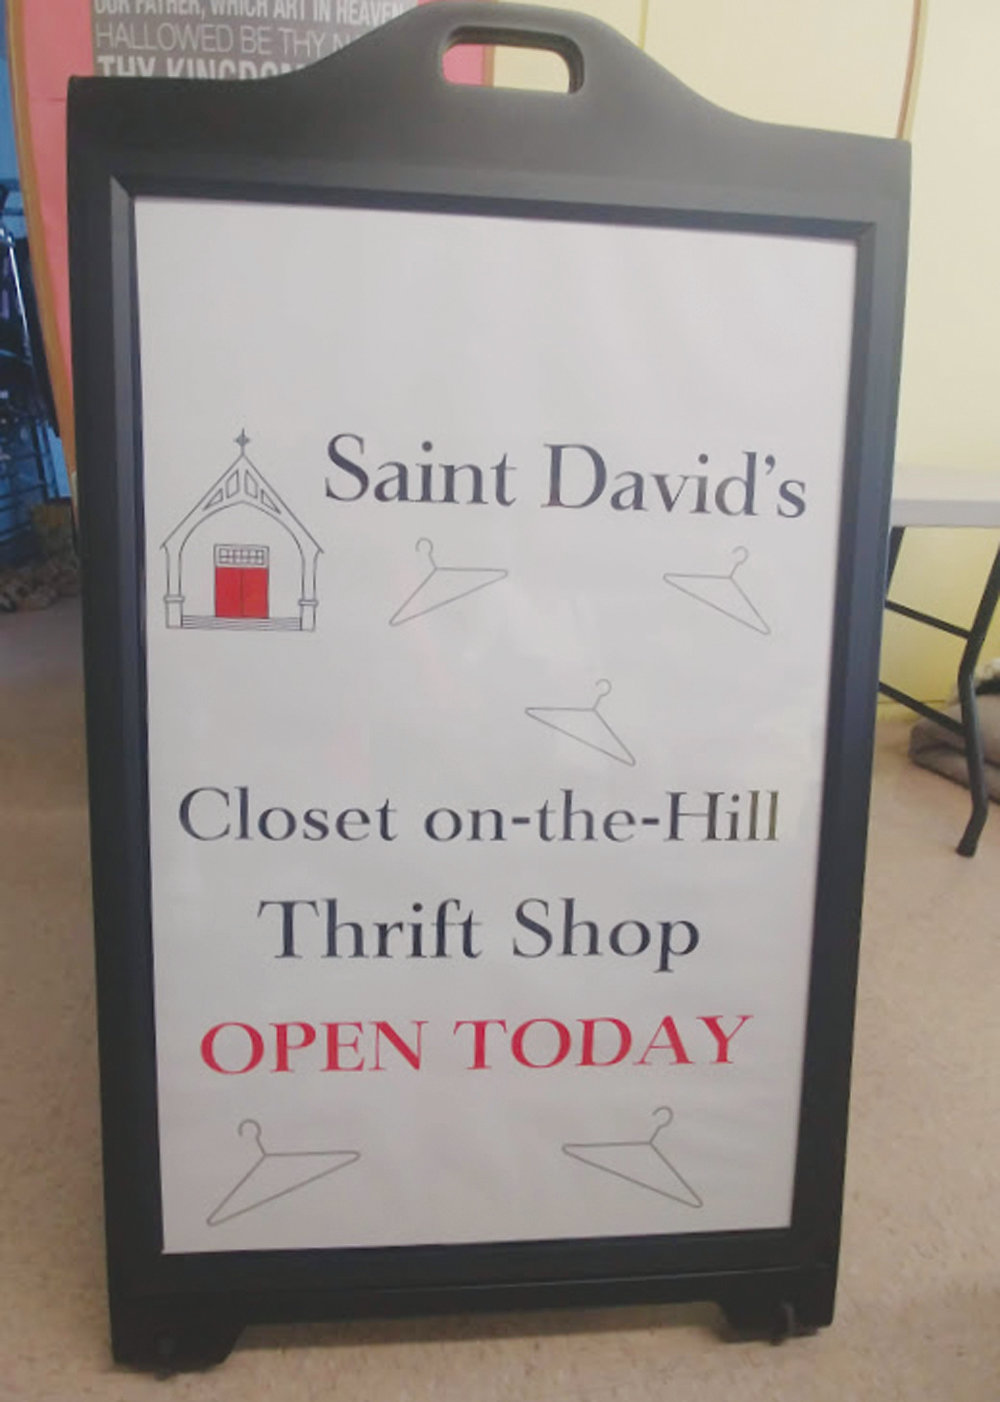 SIGNS UP: Signage like this will be placed on the road near St. David's on-the-Hill's new thrift shop, the Closet on-the-Hill, to indicate when the shop will be open for business.